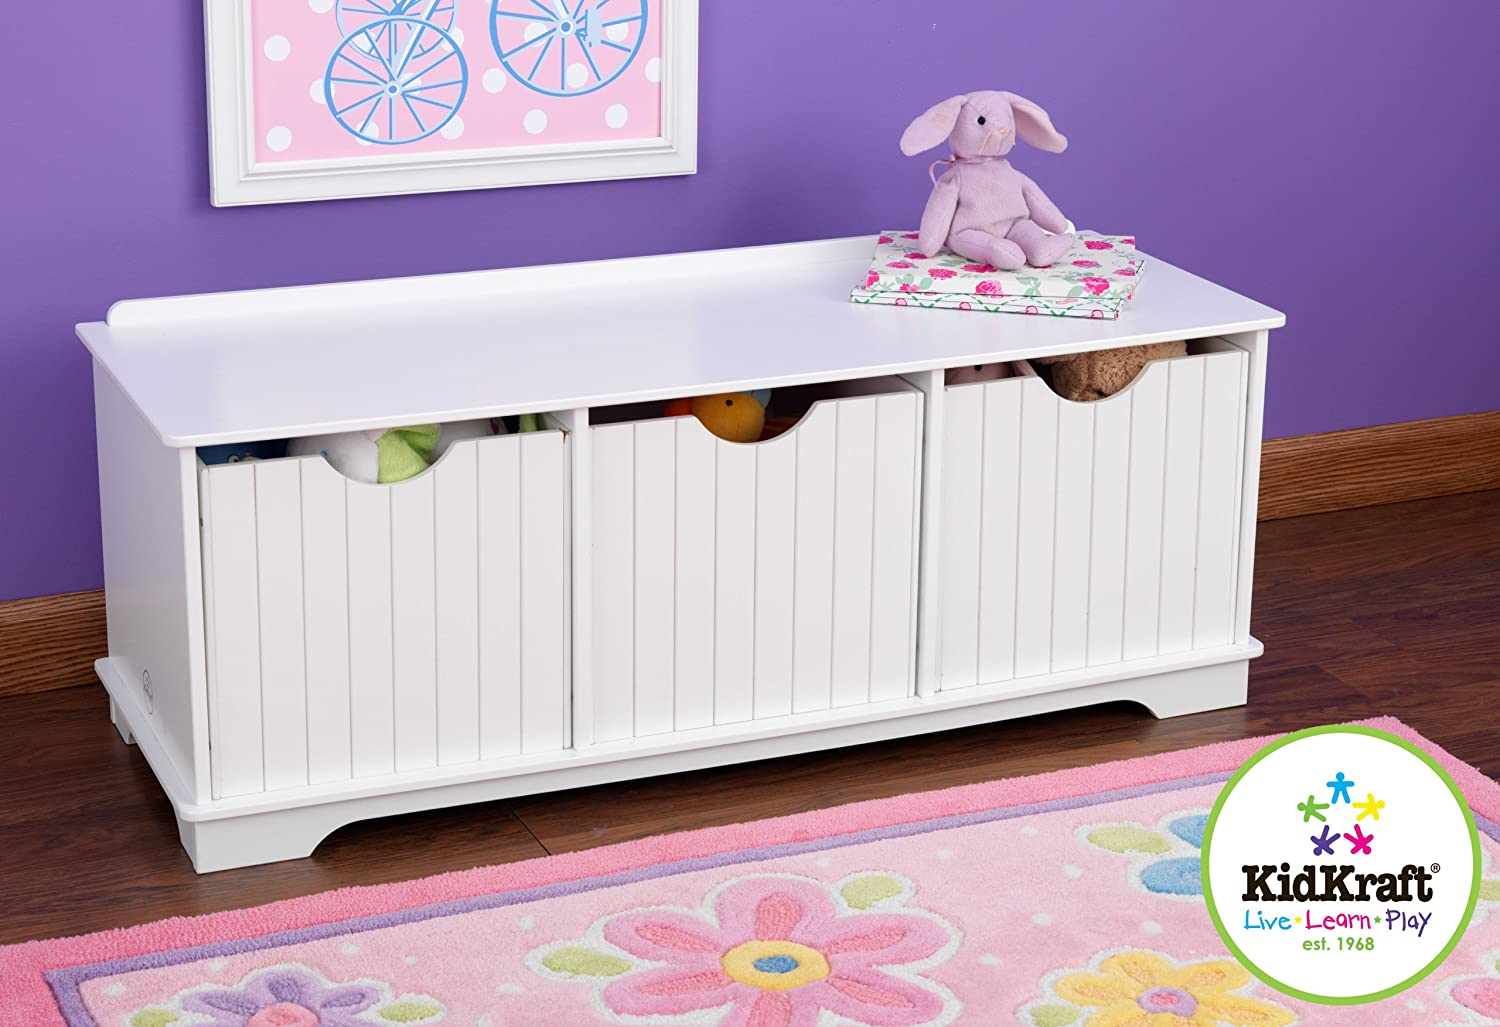 amazoncom kidkraft nantucket storage bench white toys games - Kids Room Storage Bench